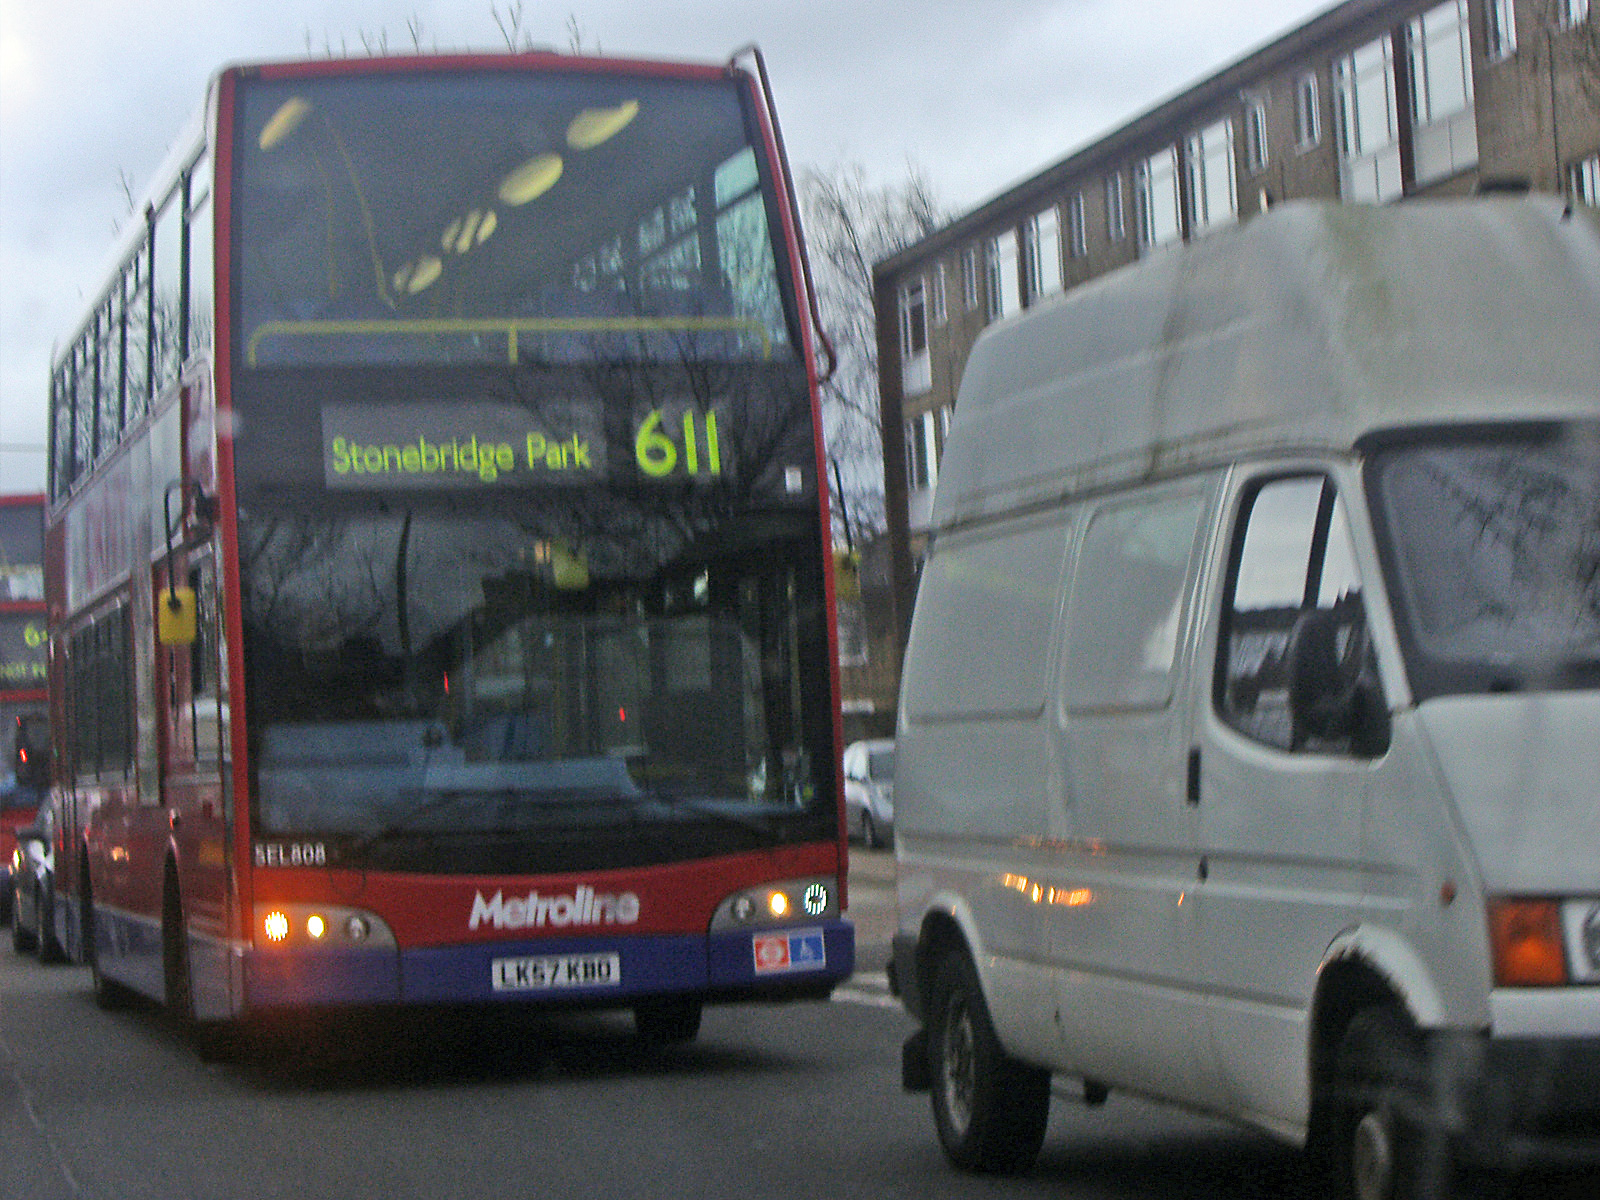 file:london buses route 611 hendon - wikimedia commons